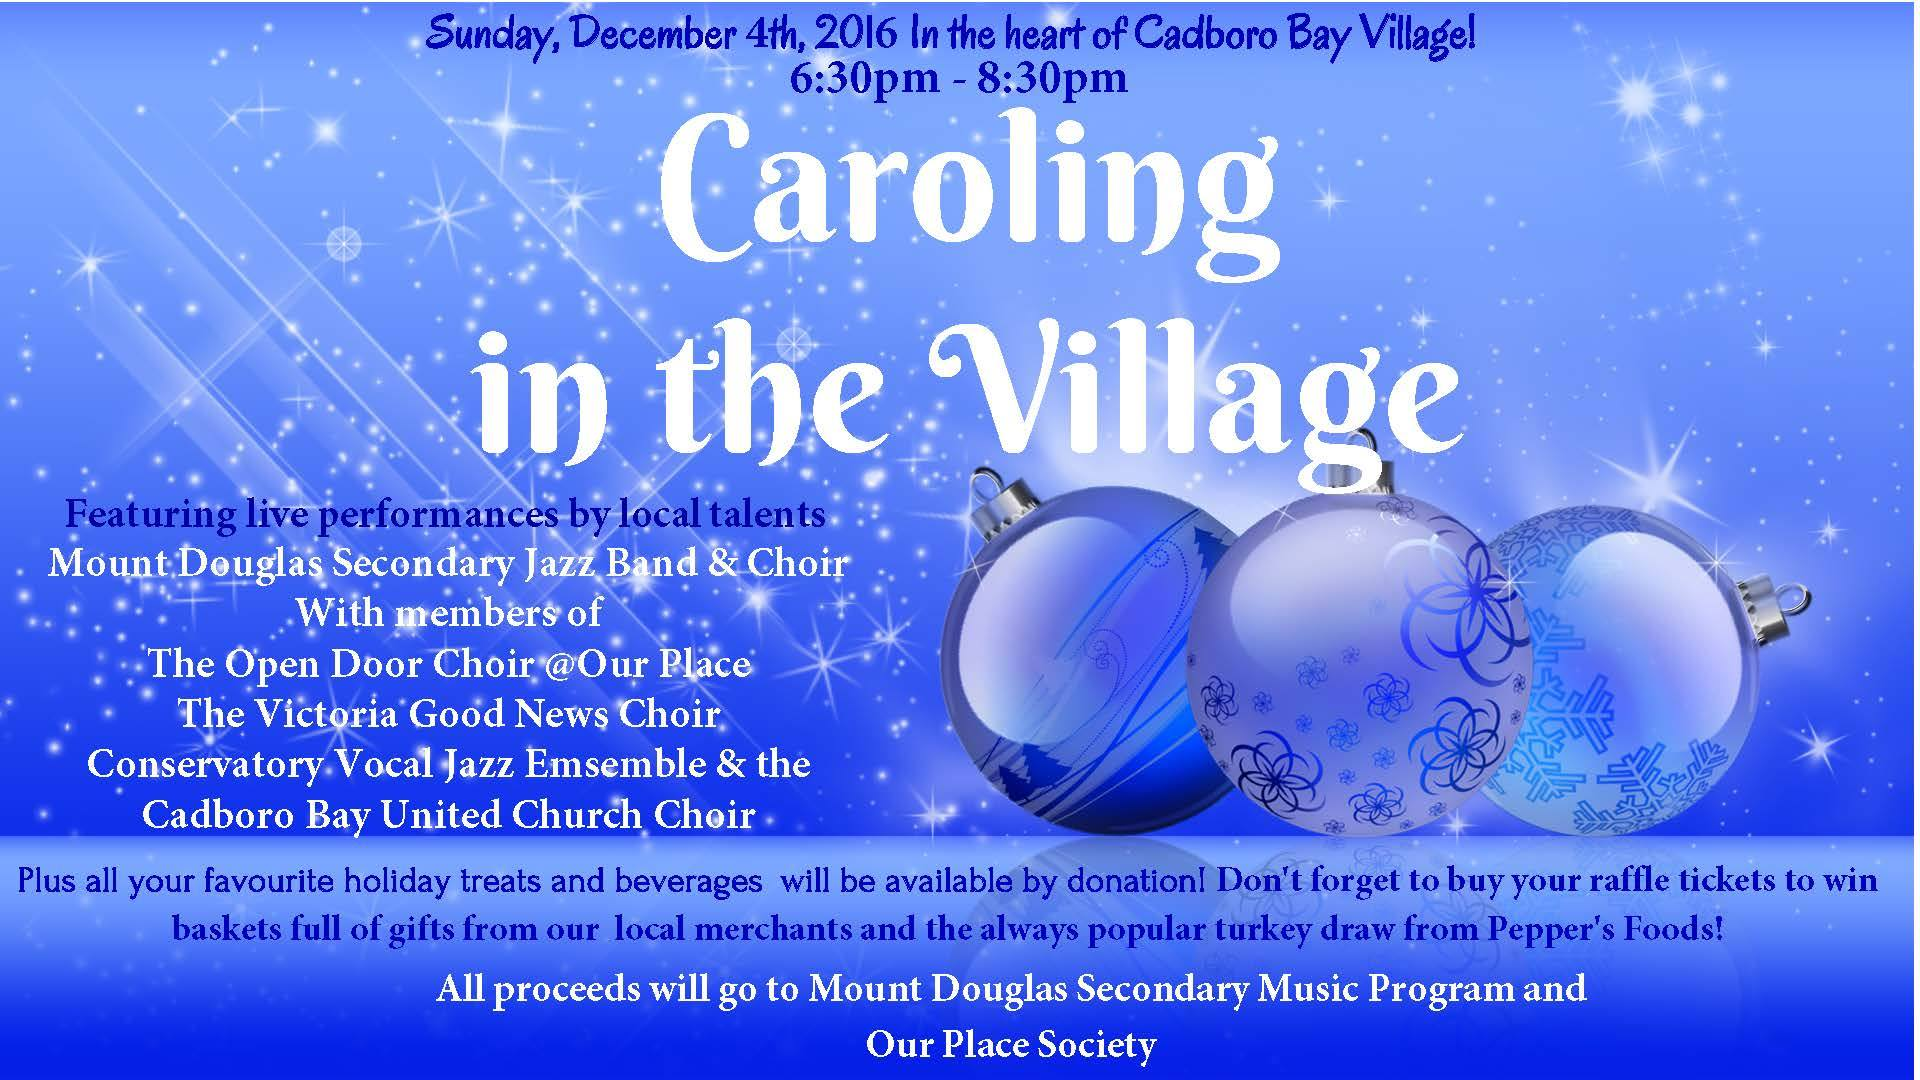 caroling-in-the-village-peppers-foods